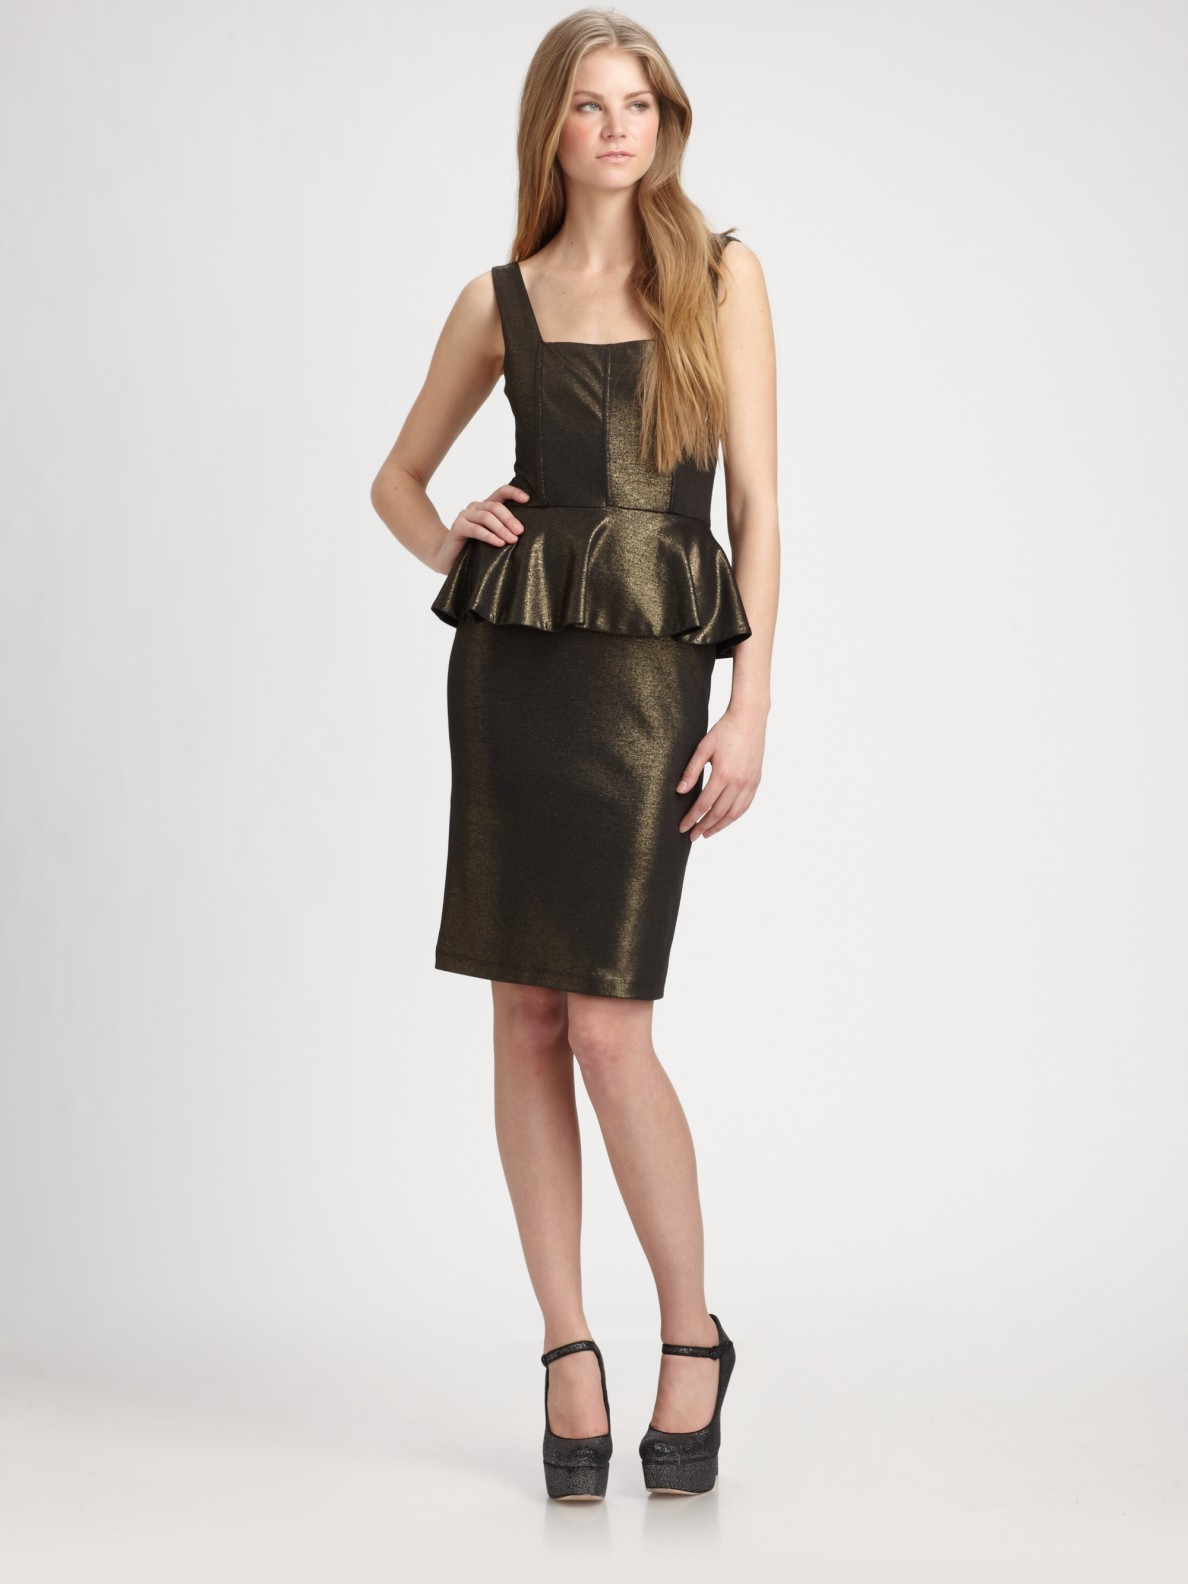 Can't find Peplum Dress in your size? Let us know your details we'll notify you when it's back in stock. Colour: Marl Grey. Please correct all required fields. Receive back in stock reminder, alerts and birthday gift. Also receive subscriber-exclusive sales, first dibs on new brands and trends.